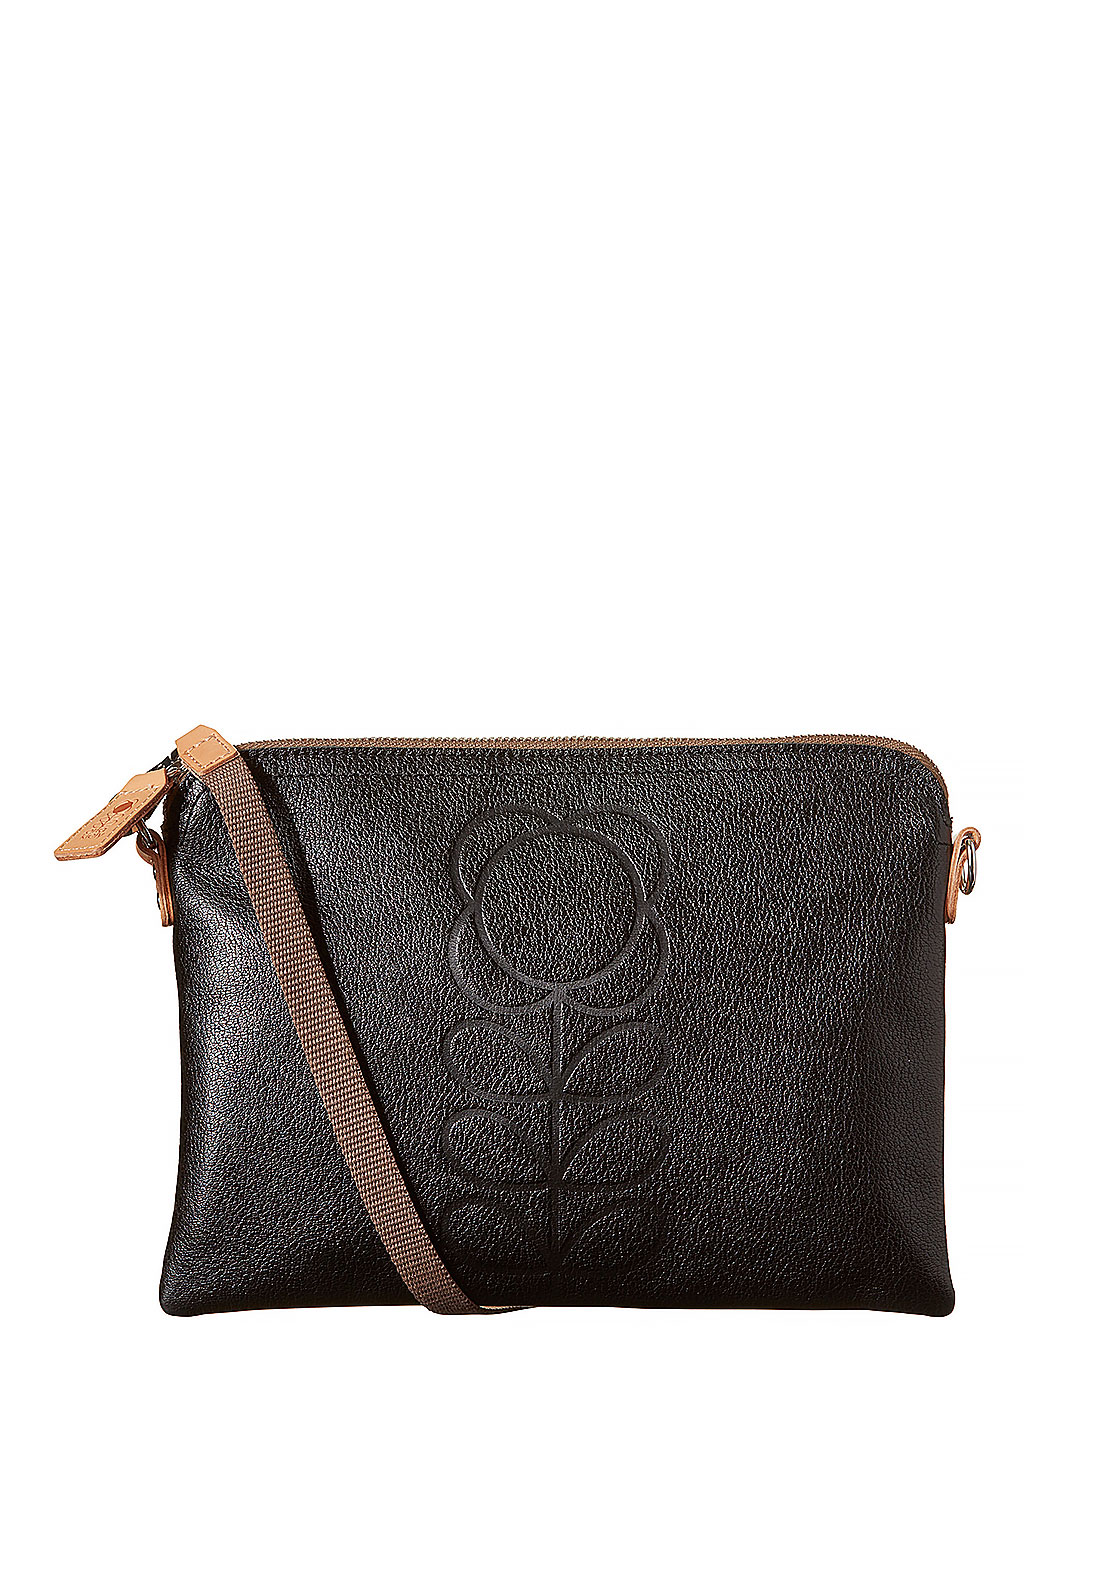 Orla Kiely Embossed Flower Leather Travel Crossbody Pouch, Black